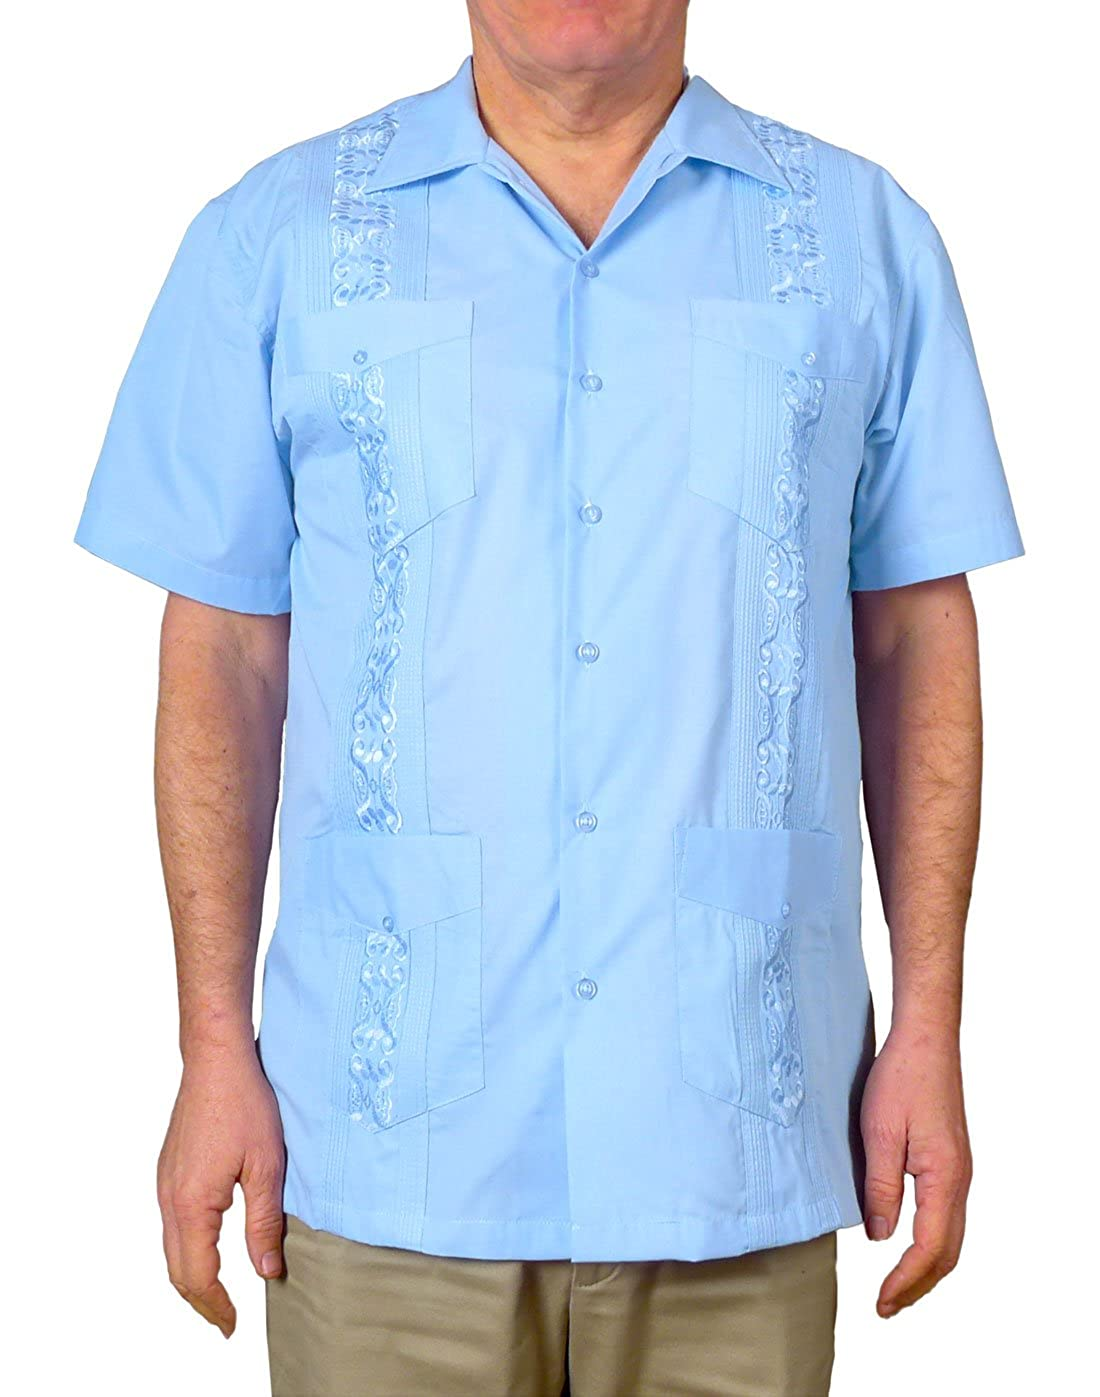 dcea3b89da Imported Classic Design with embroidery and 4 pockets. Havana - Mexican -  Caribbean Style Also known as a Chacbana